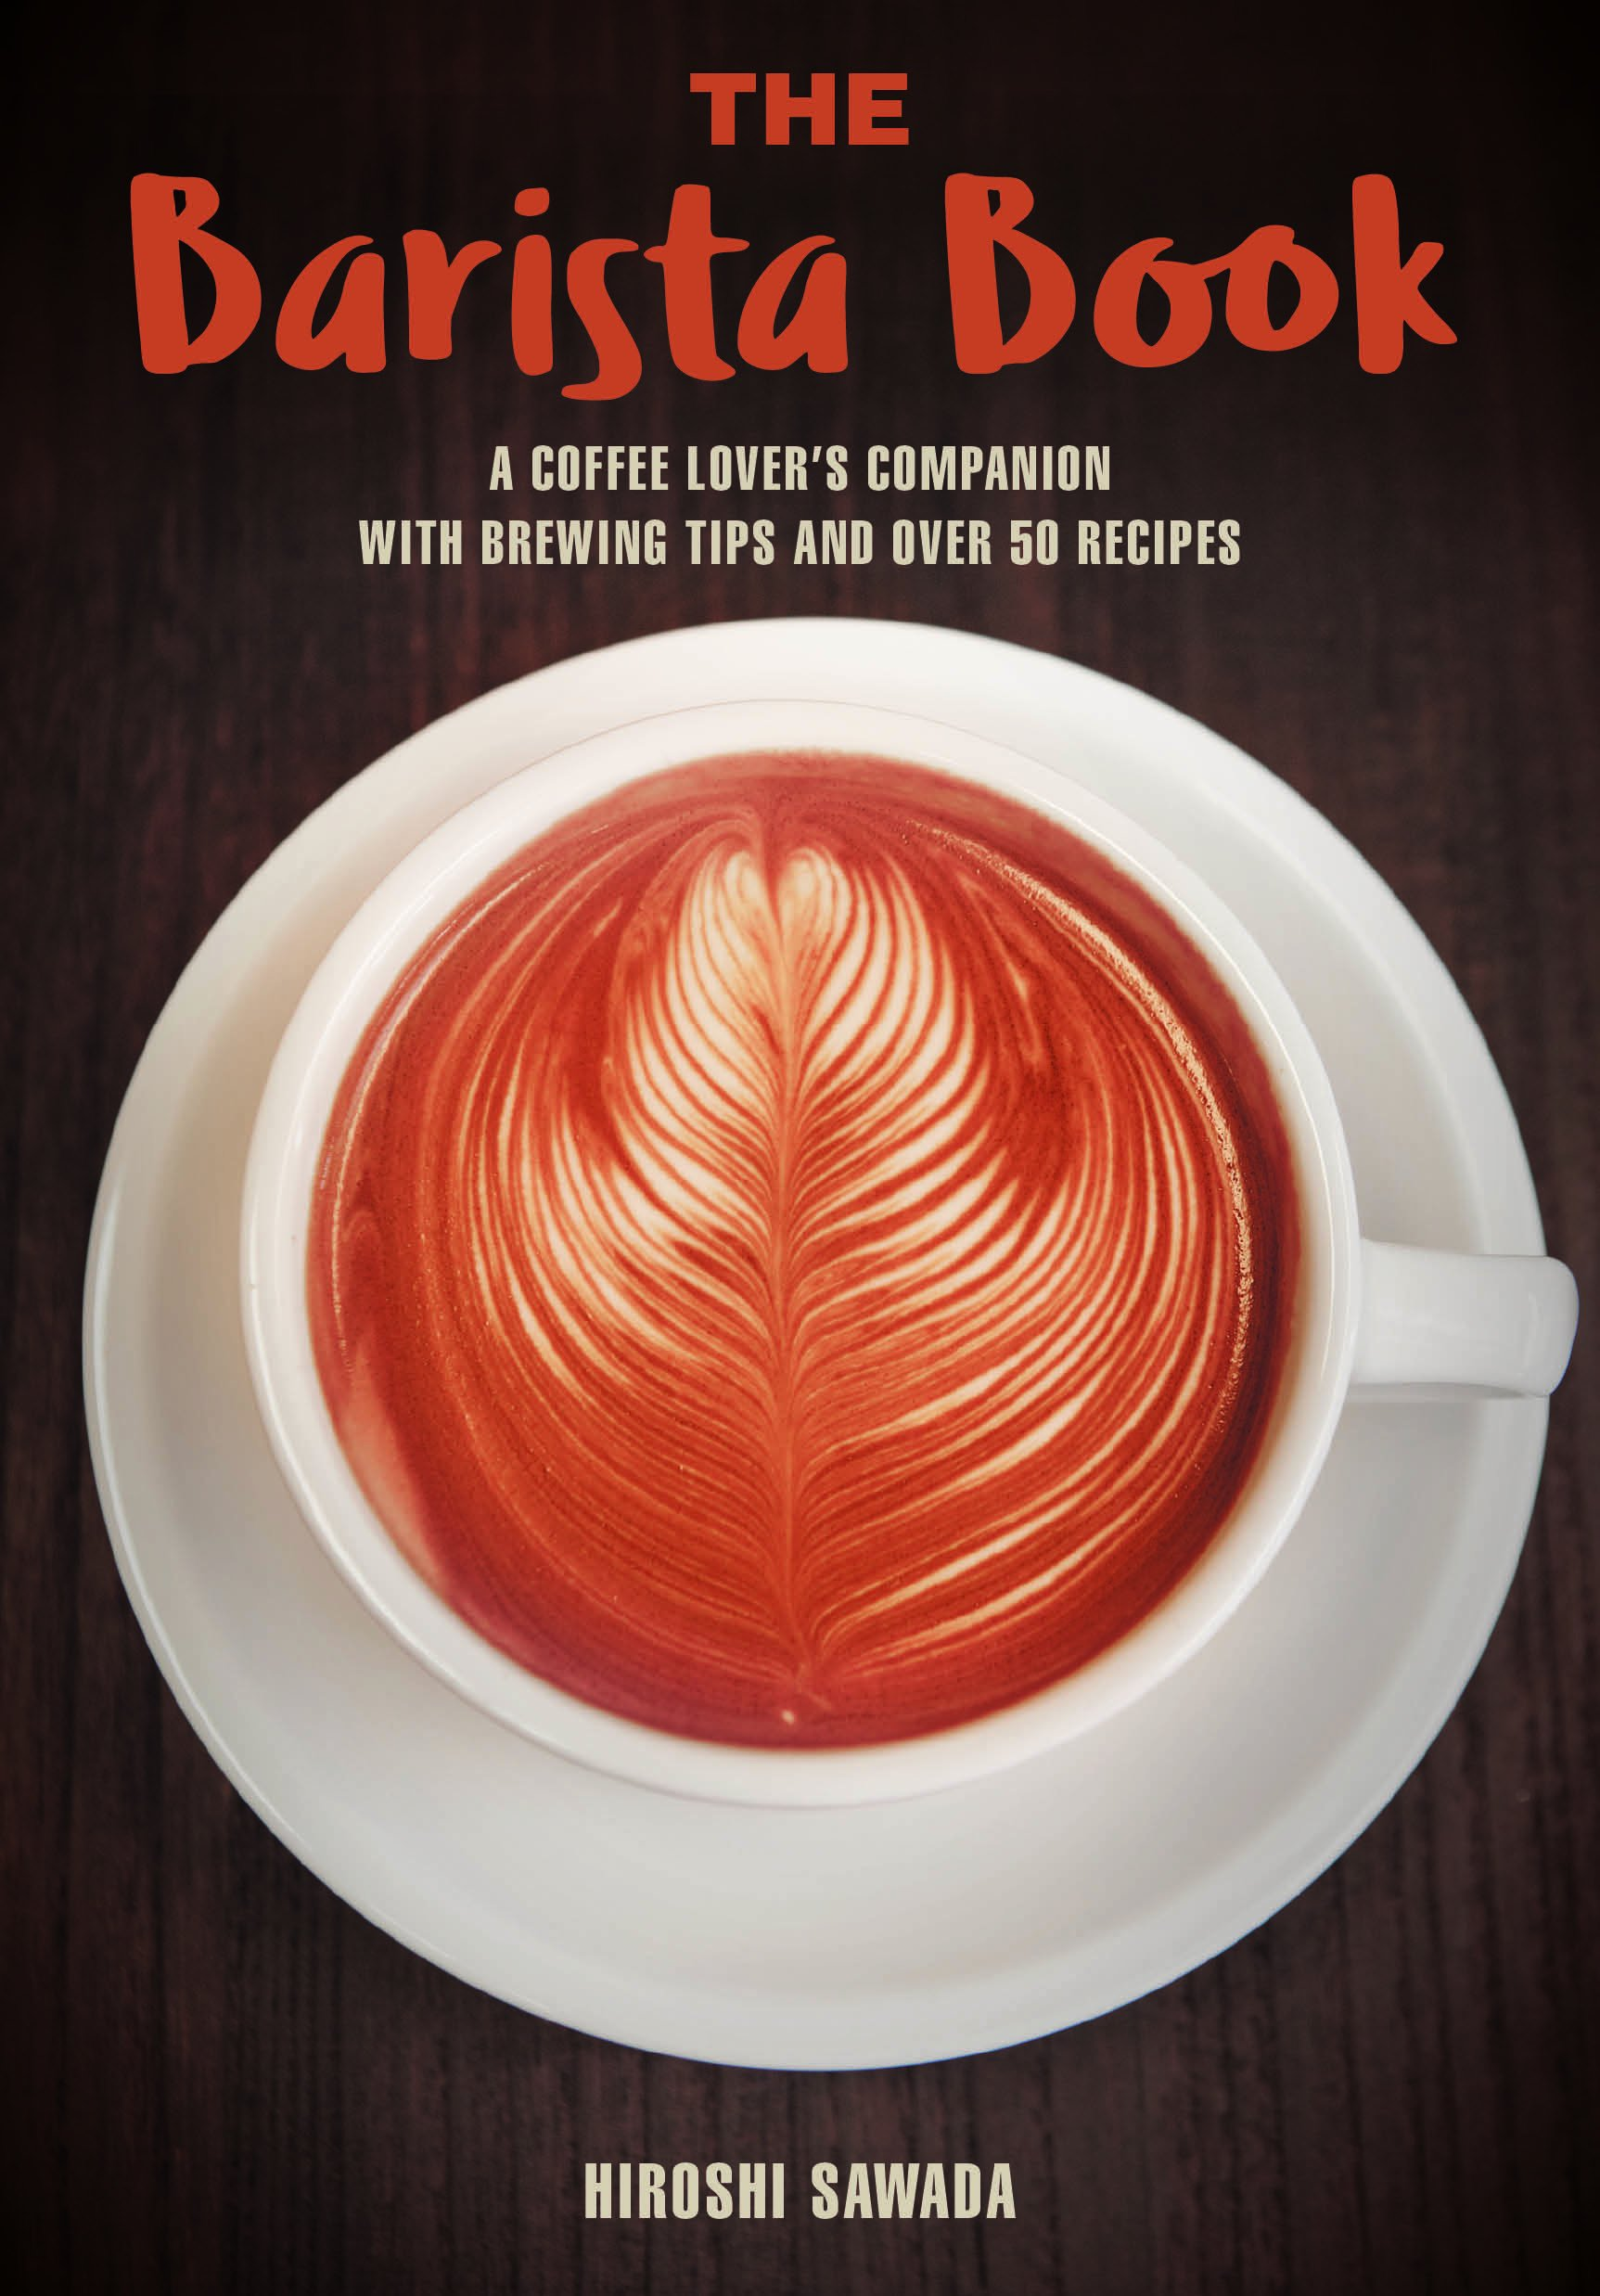 Read Online The Barista Book: A Coffee Lover's Companion with Brewing Tips and Over 50 Recipes PDF